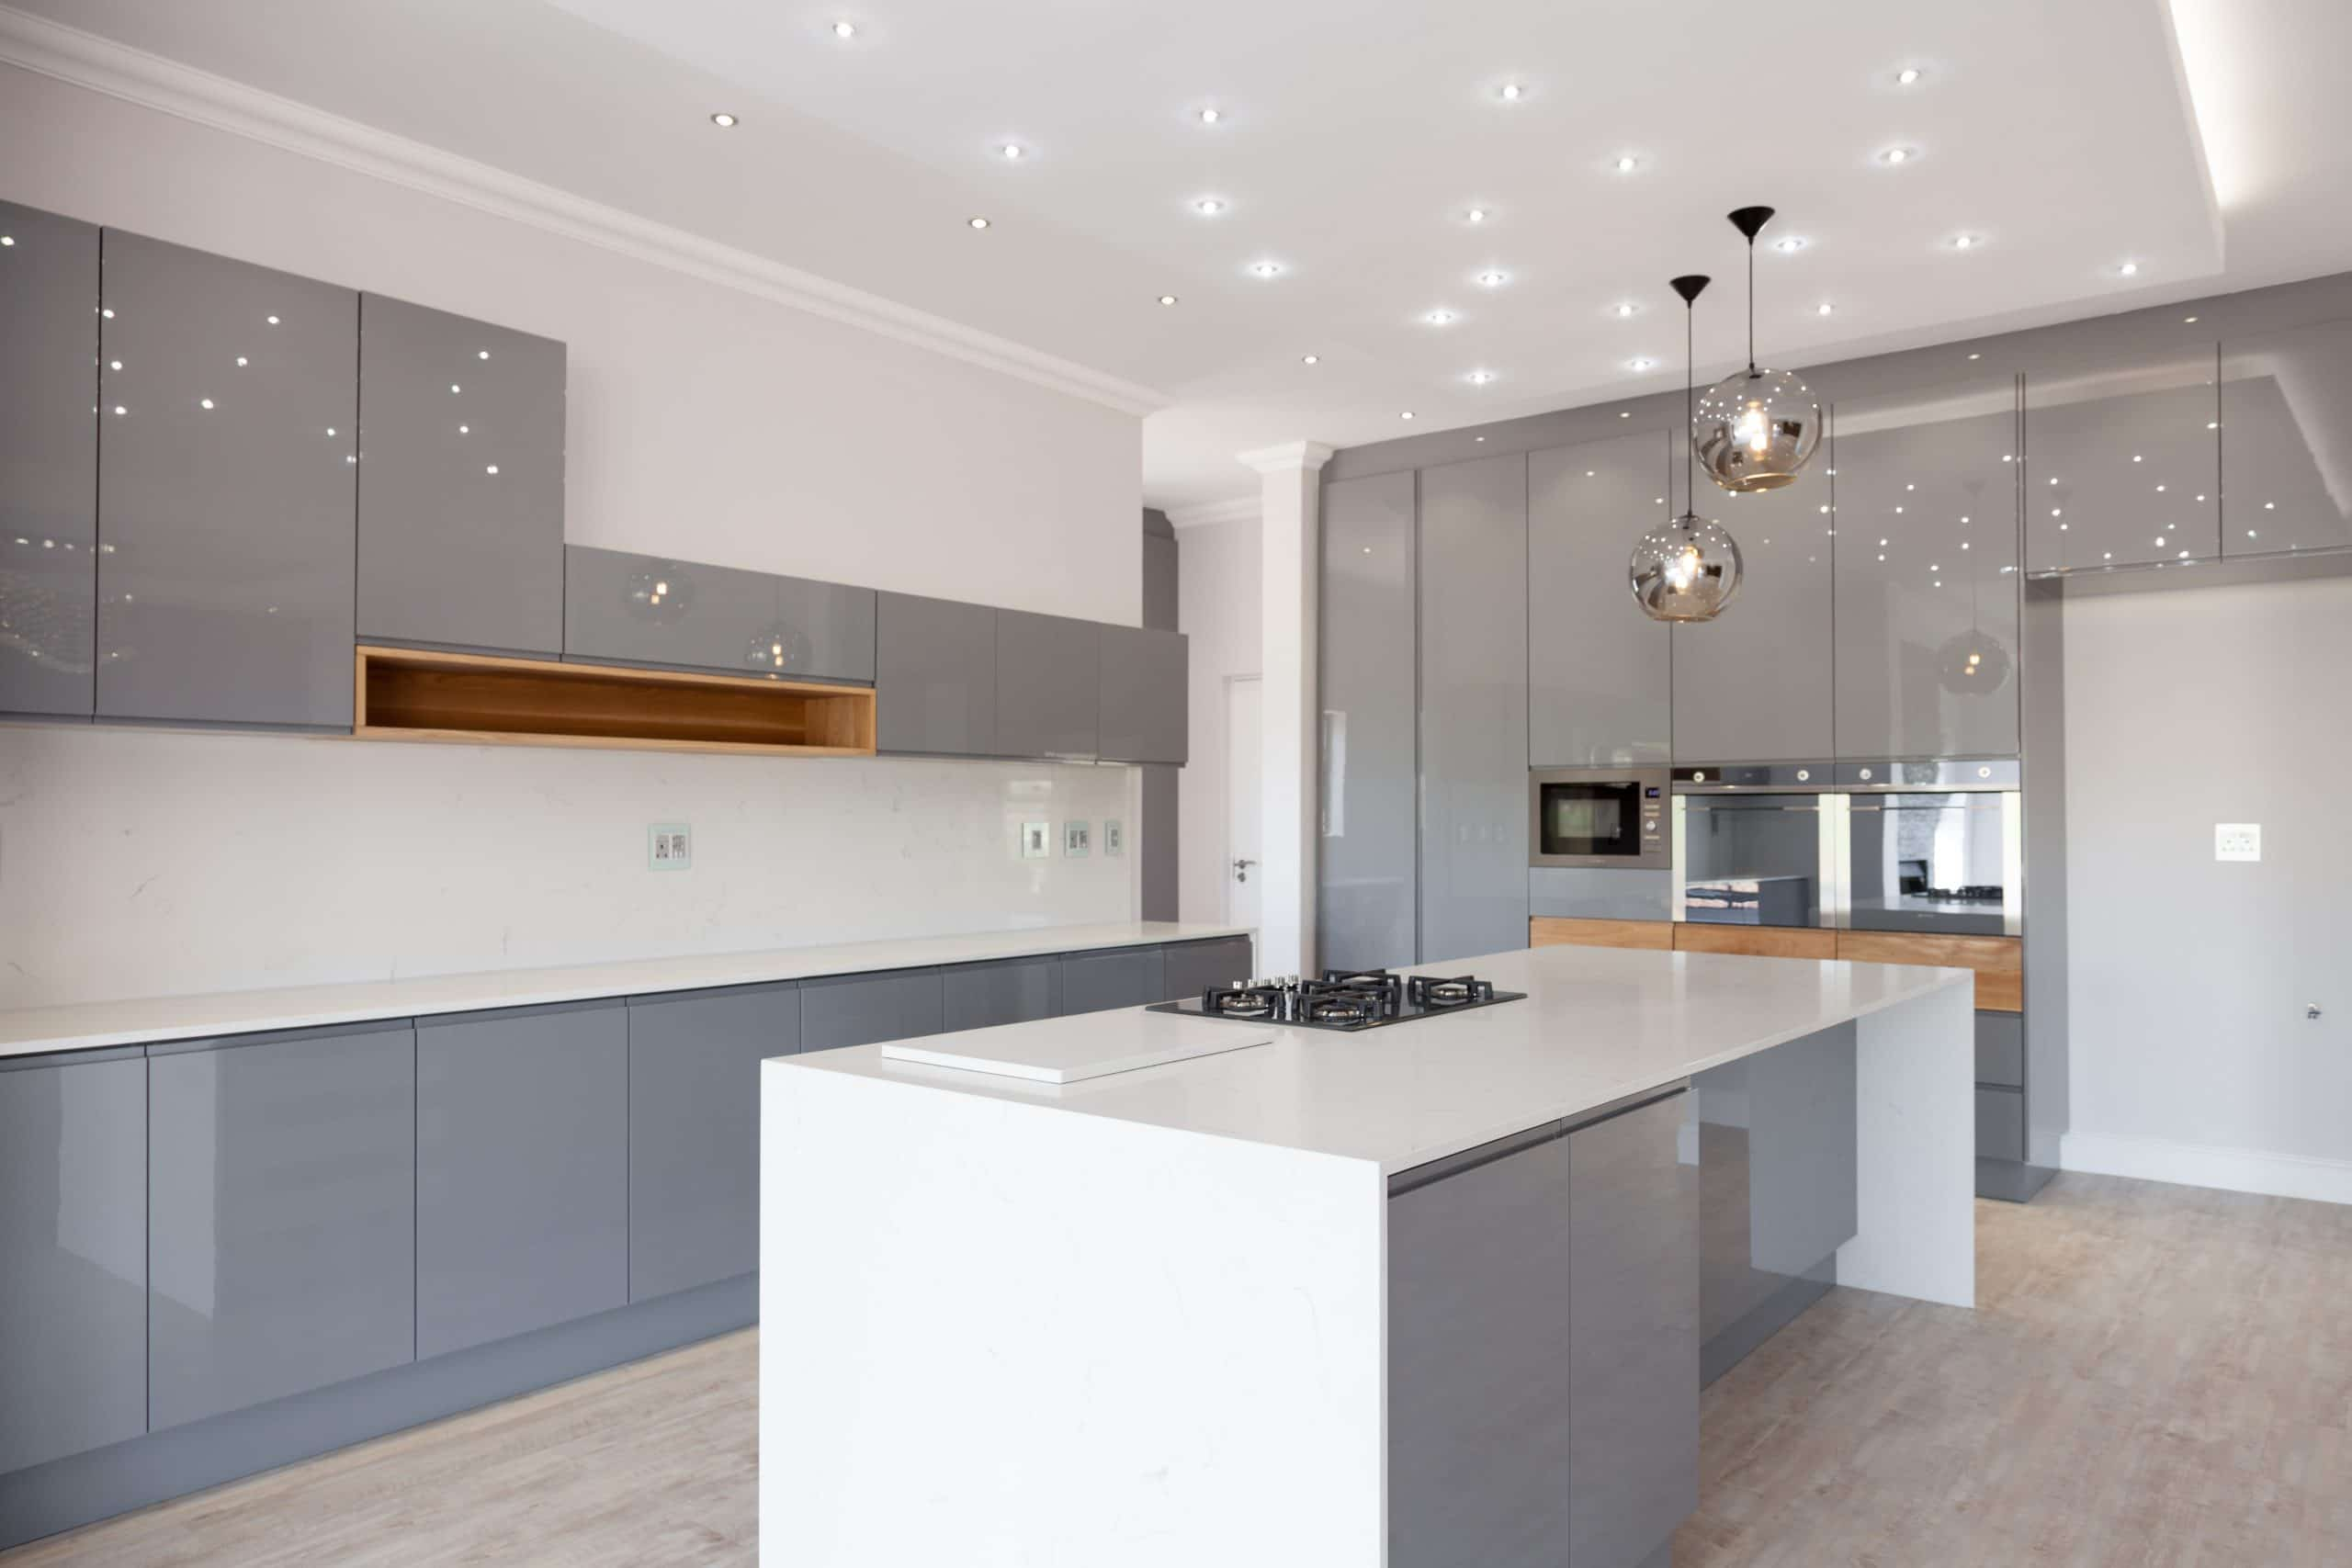 ultra modern kitchen designed by crontech consulting architecture in langebaan country estate oak grey starlight